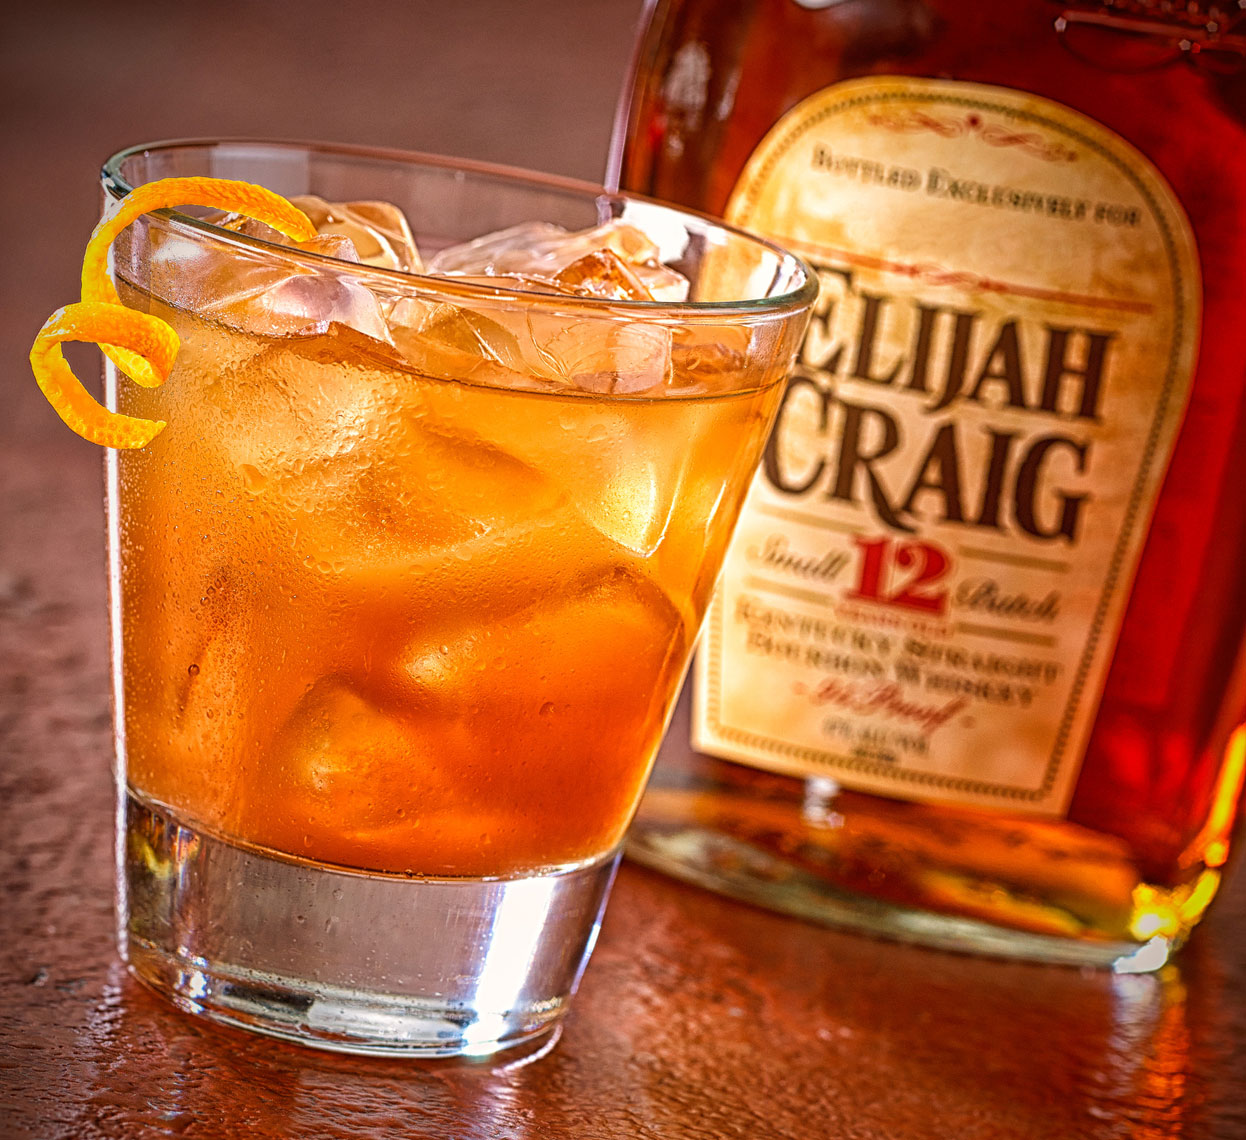 Elijah Craig on the rocks with an orange curl, bottle in background.  Food photography, InsideOut Studios.